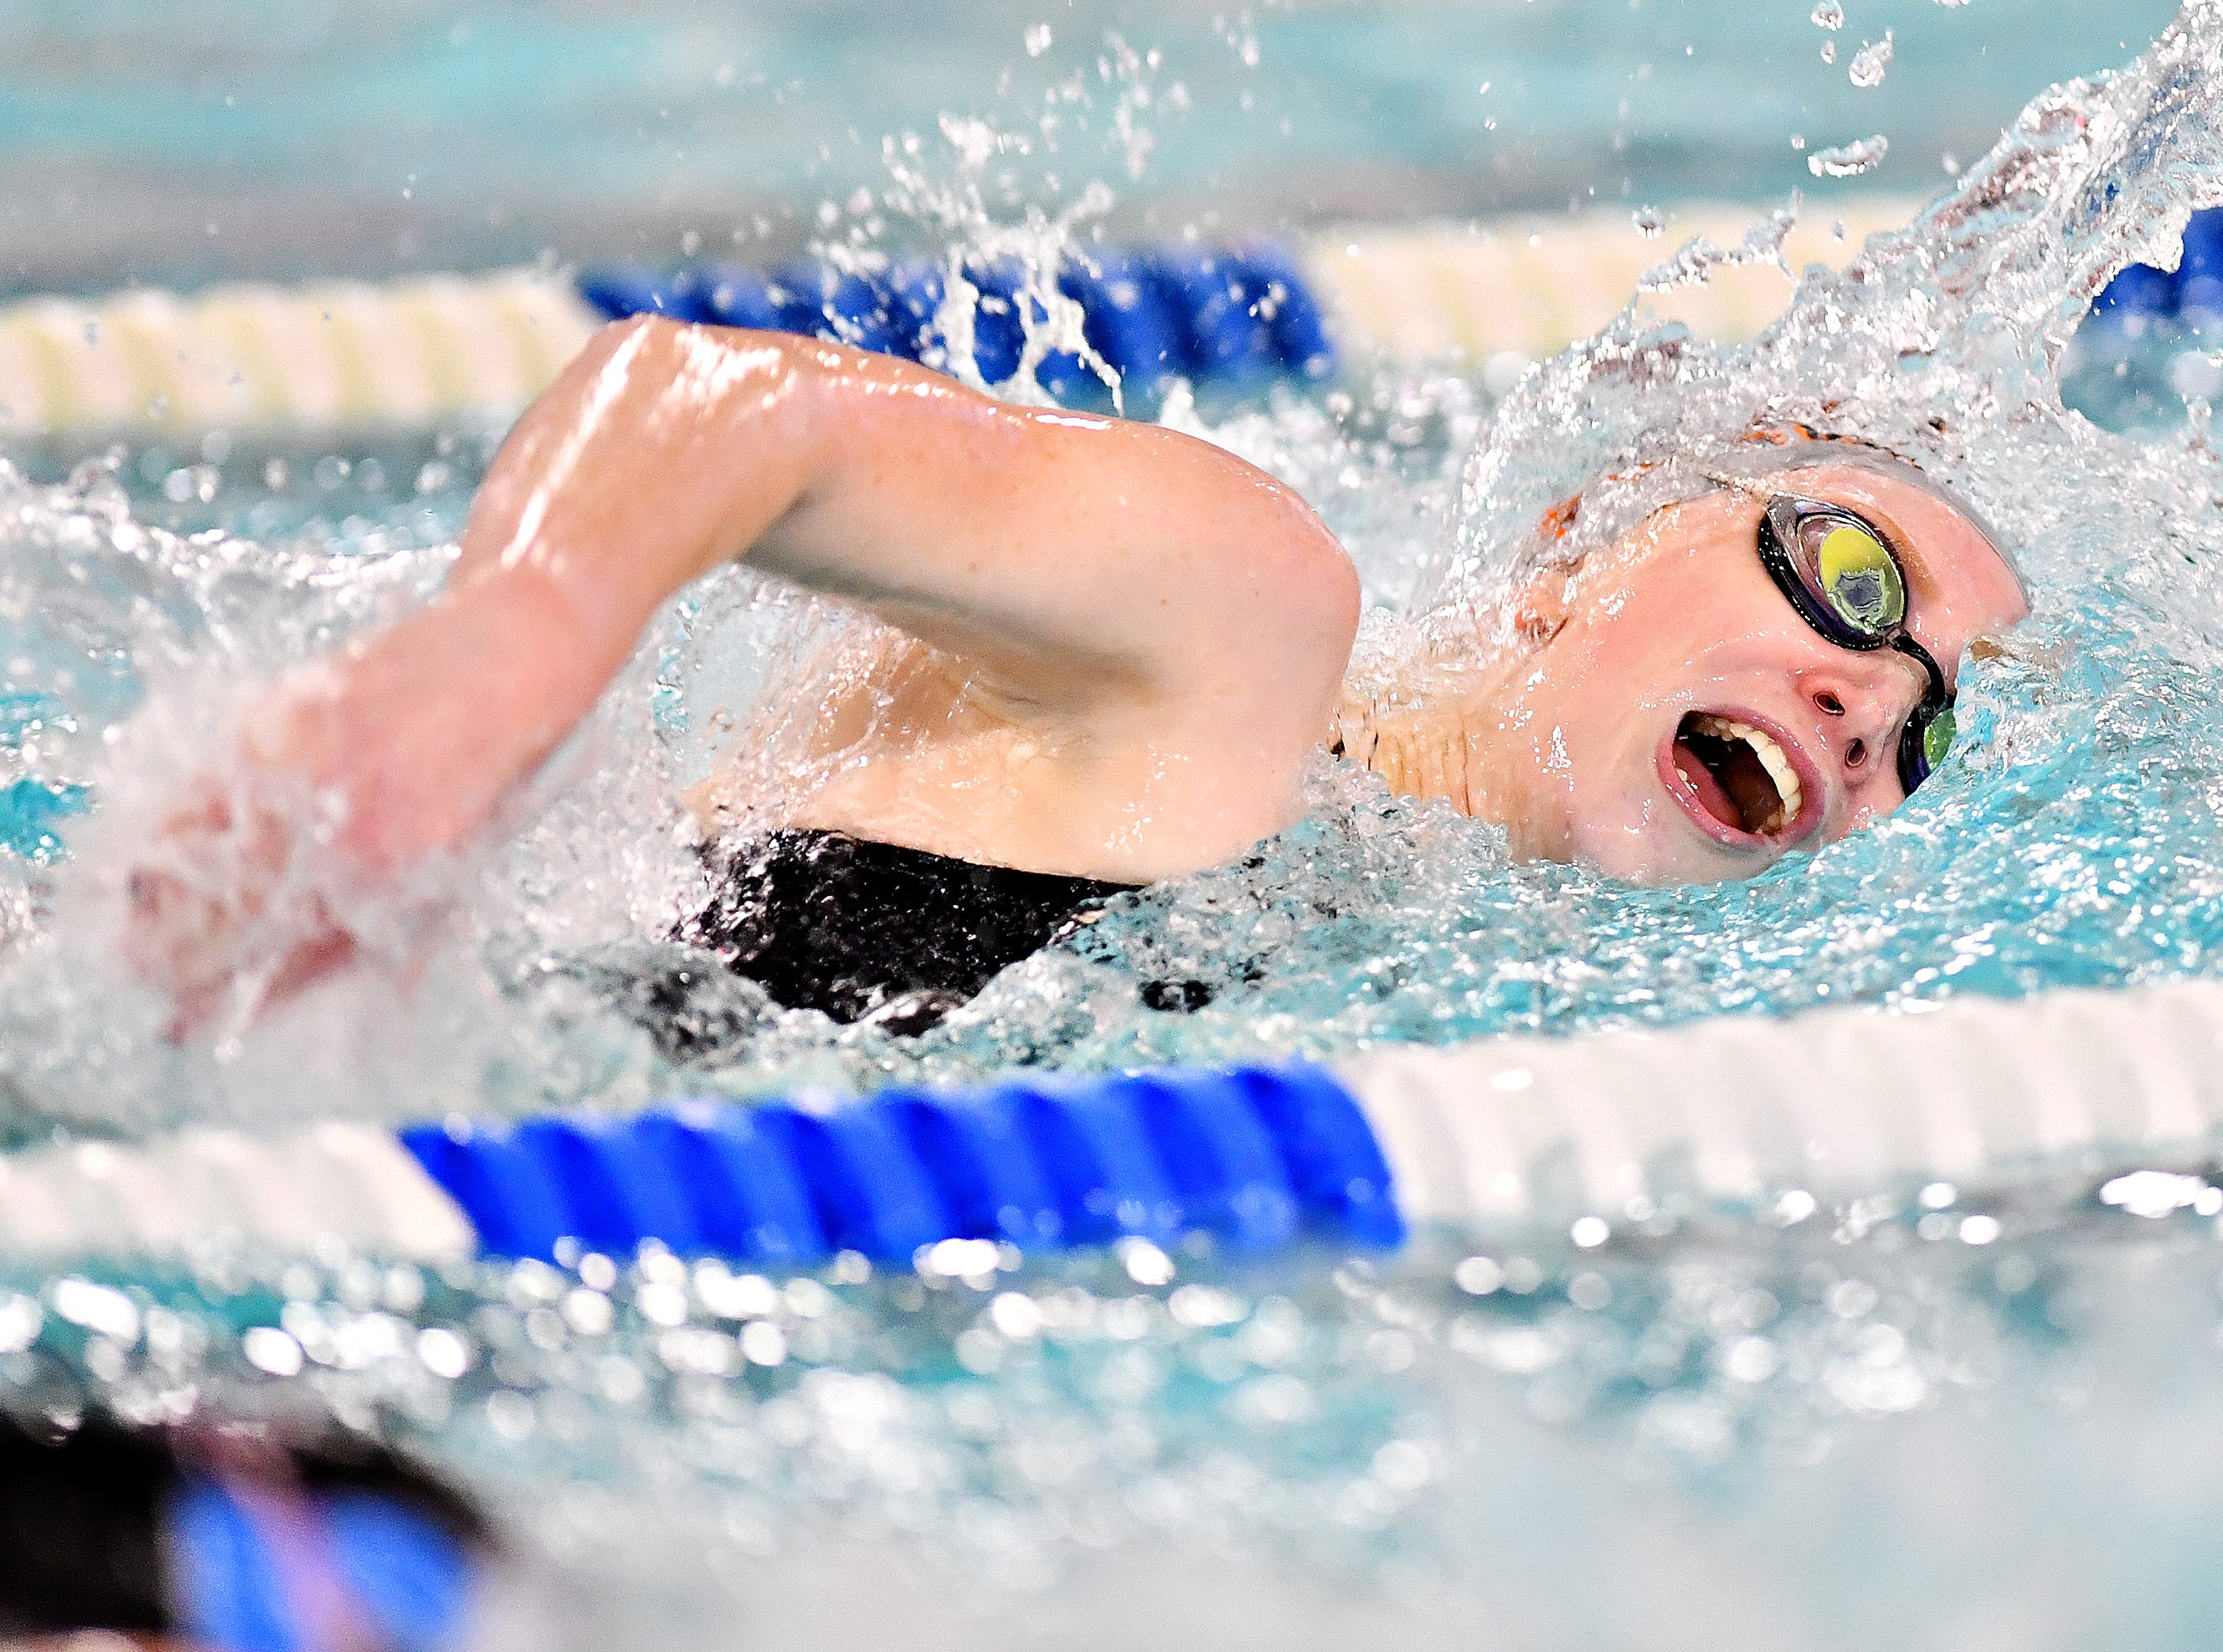 Central York's Gabby Miller wins the 100 Yard Freestyle event at 56.21 during swimming action against Dallastown at Dallastown Area High School in York Township, Thursday, Jan. 10, 2019. Dawn J. Sagert photo